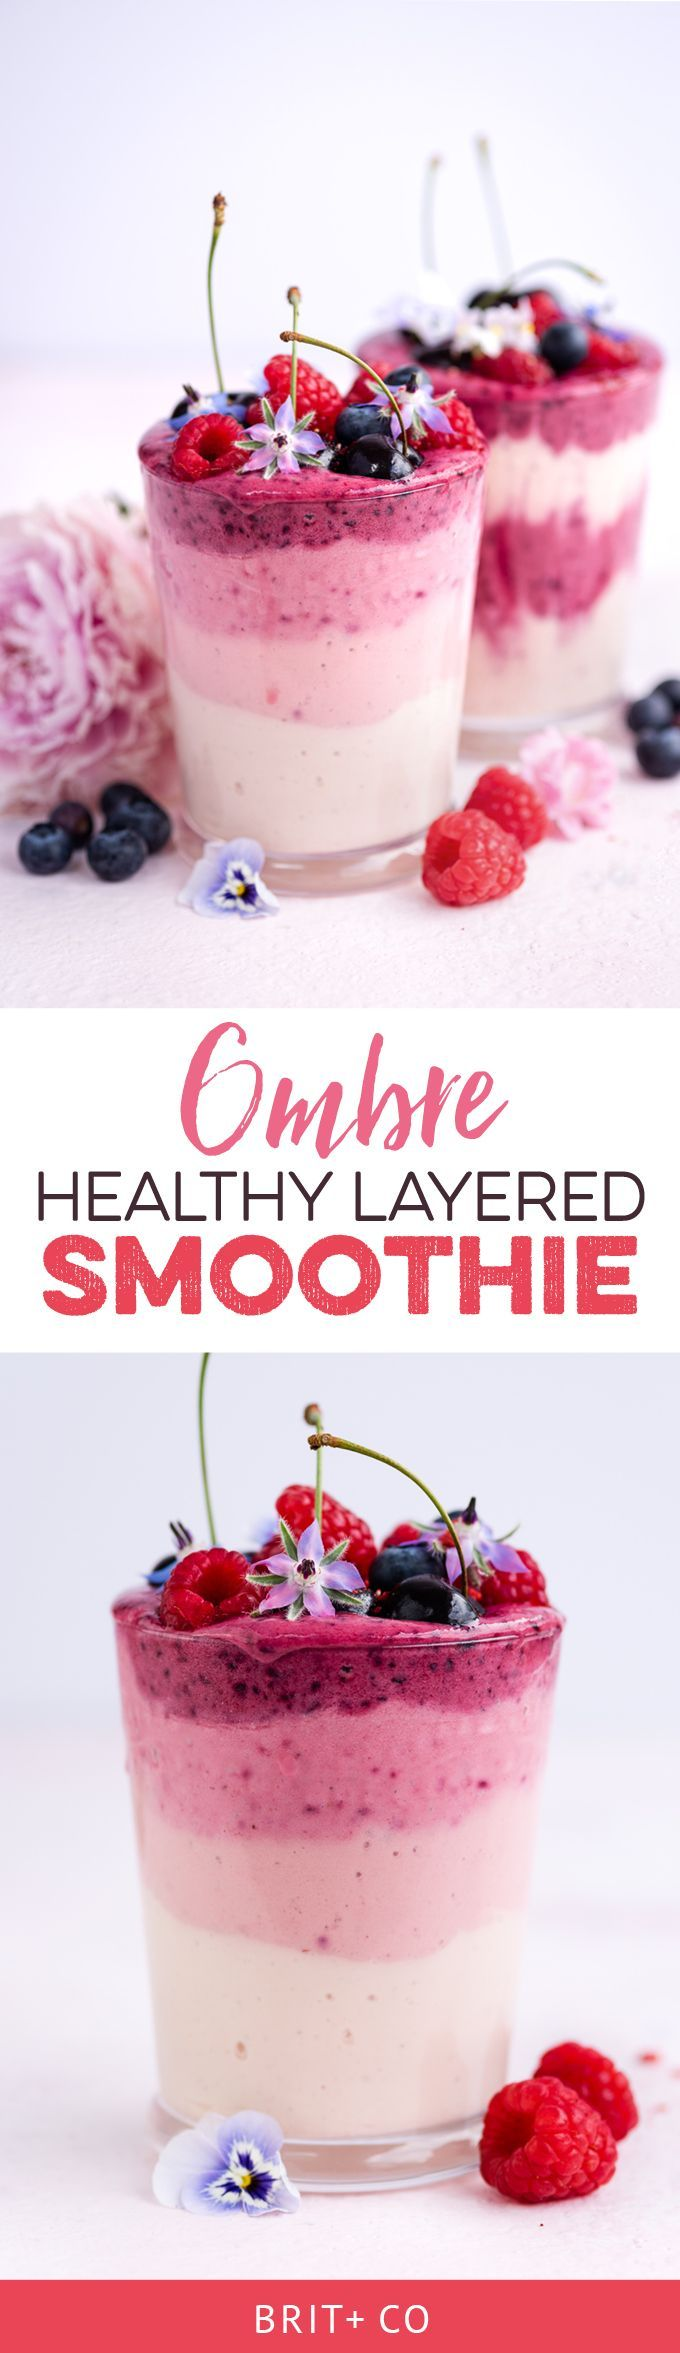 This Layered Berry Ombre Smoothie Is Almost Too Pretty to Drink via Brit + Co